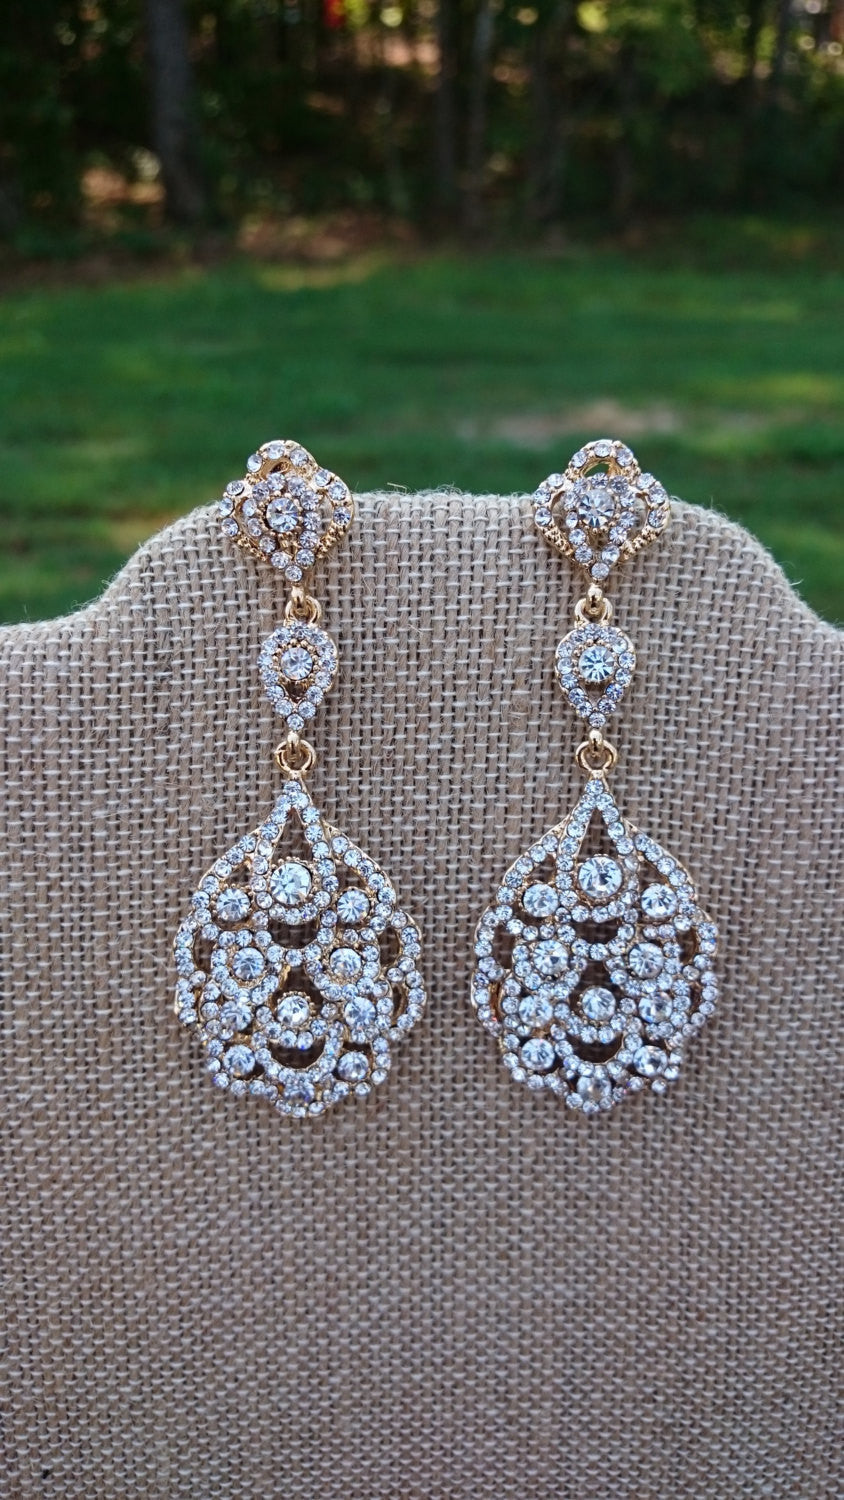 1920s Art Deco Gatsby Bridal Crystal Gold Earrings, Downton Abbey Wedding Earrings, Chandelier Long Earrings, Statement Earrings